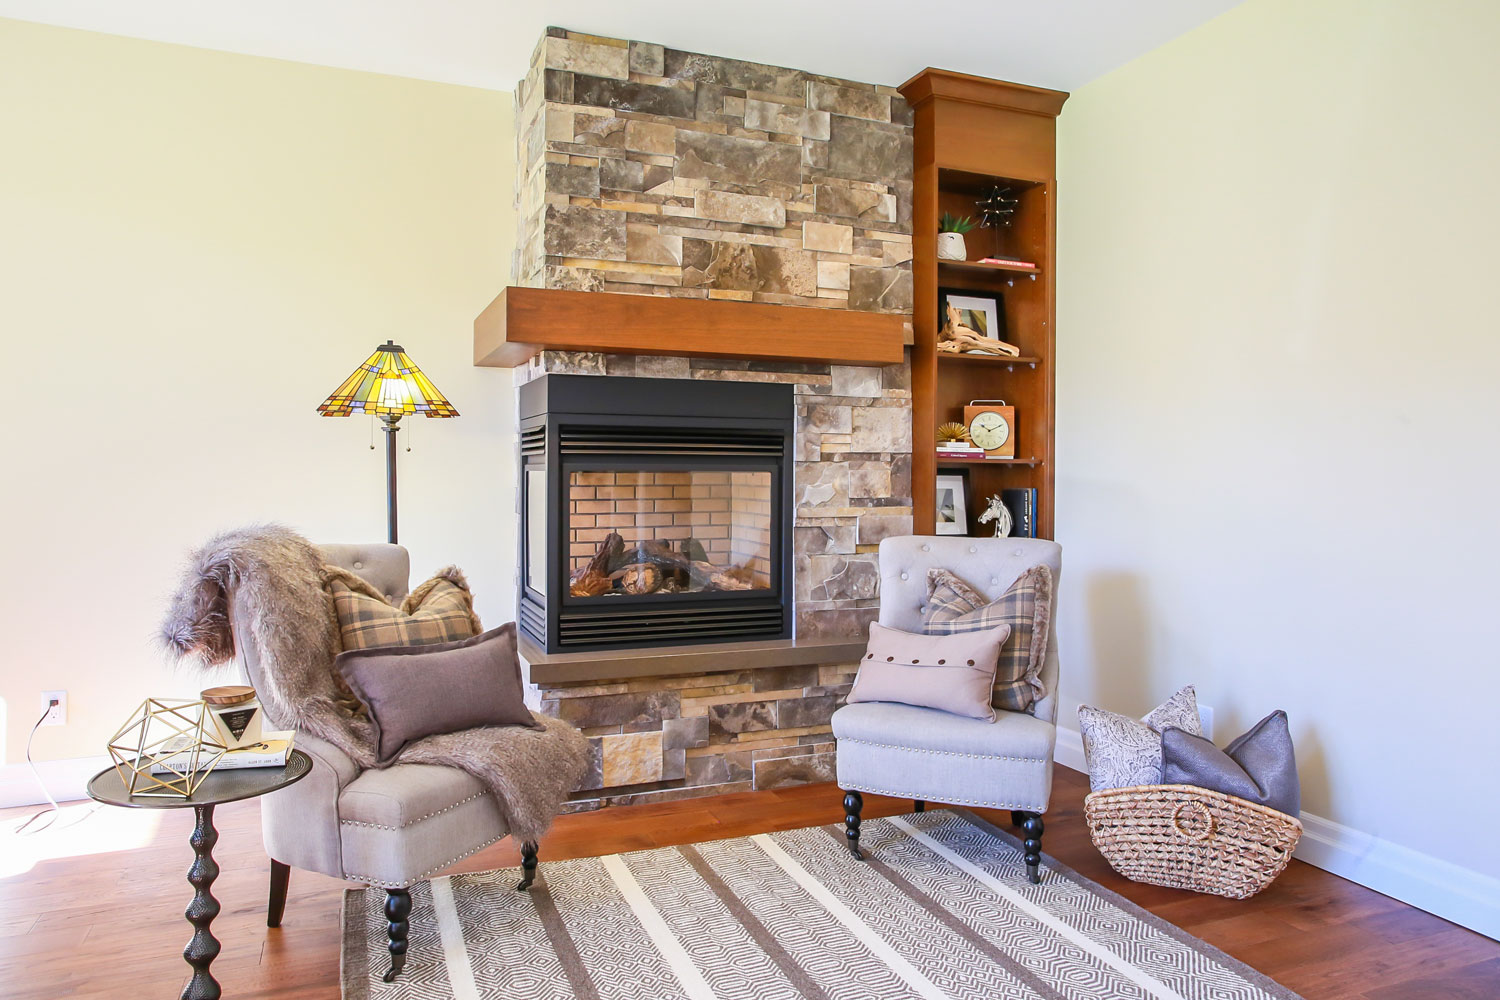 basement renovation with 2-sided fireplace and comfortable sitting area - total living concepts barrie ontario